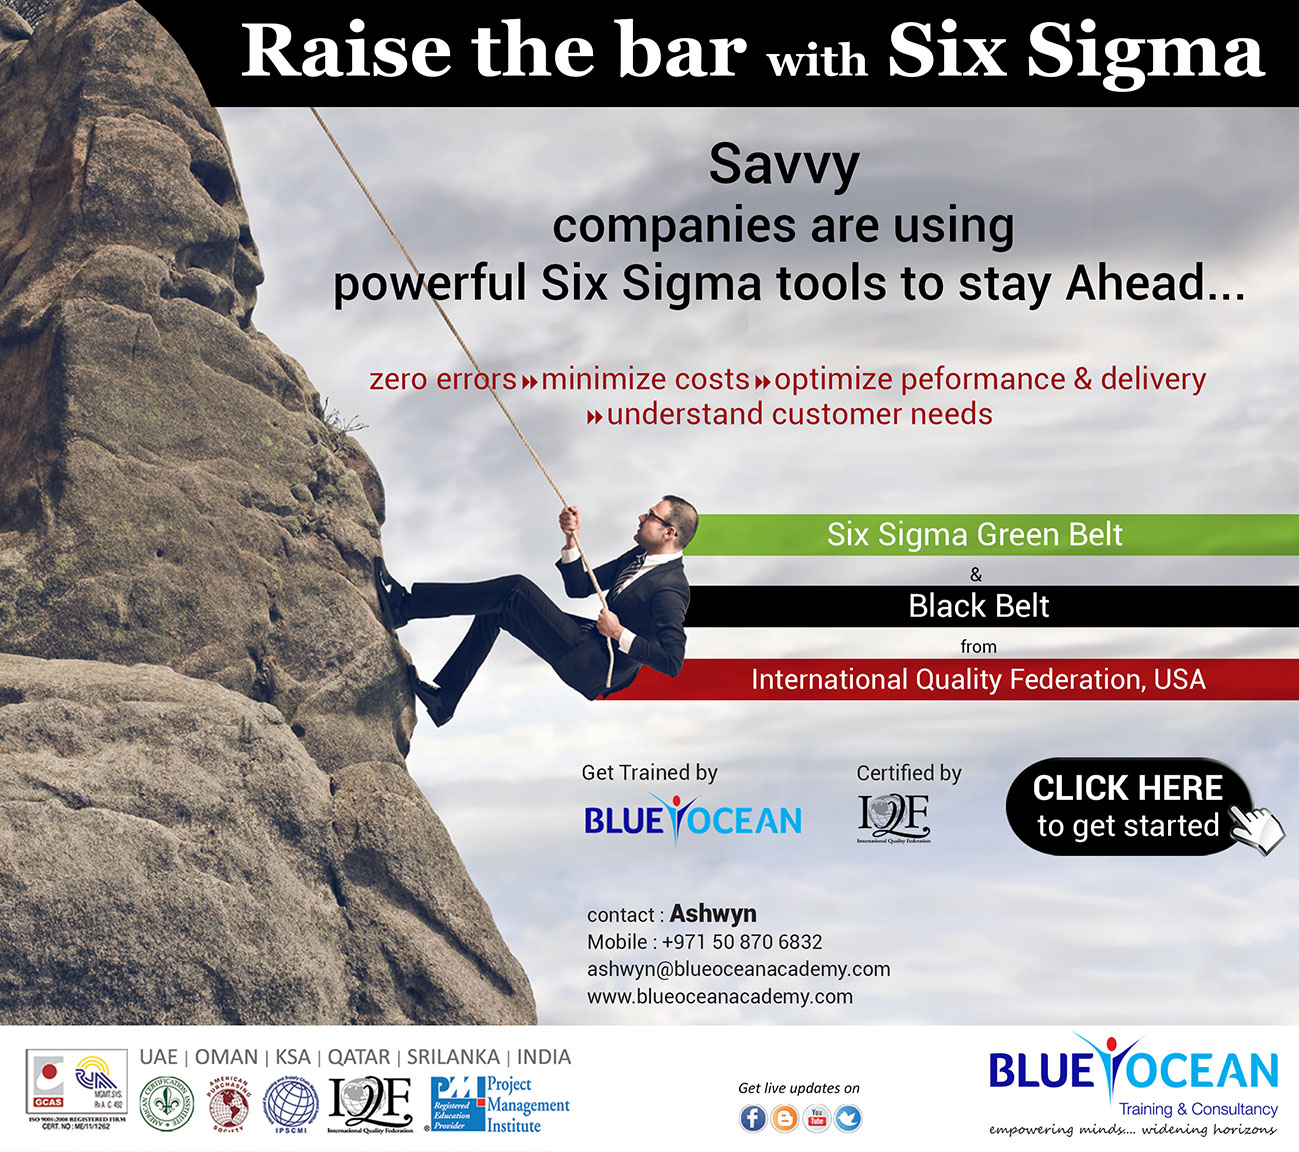 Raise The Bar With Six Sigma